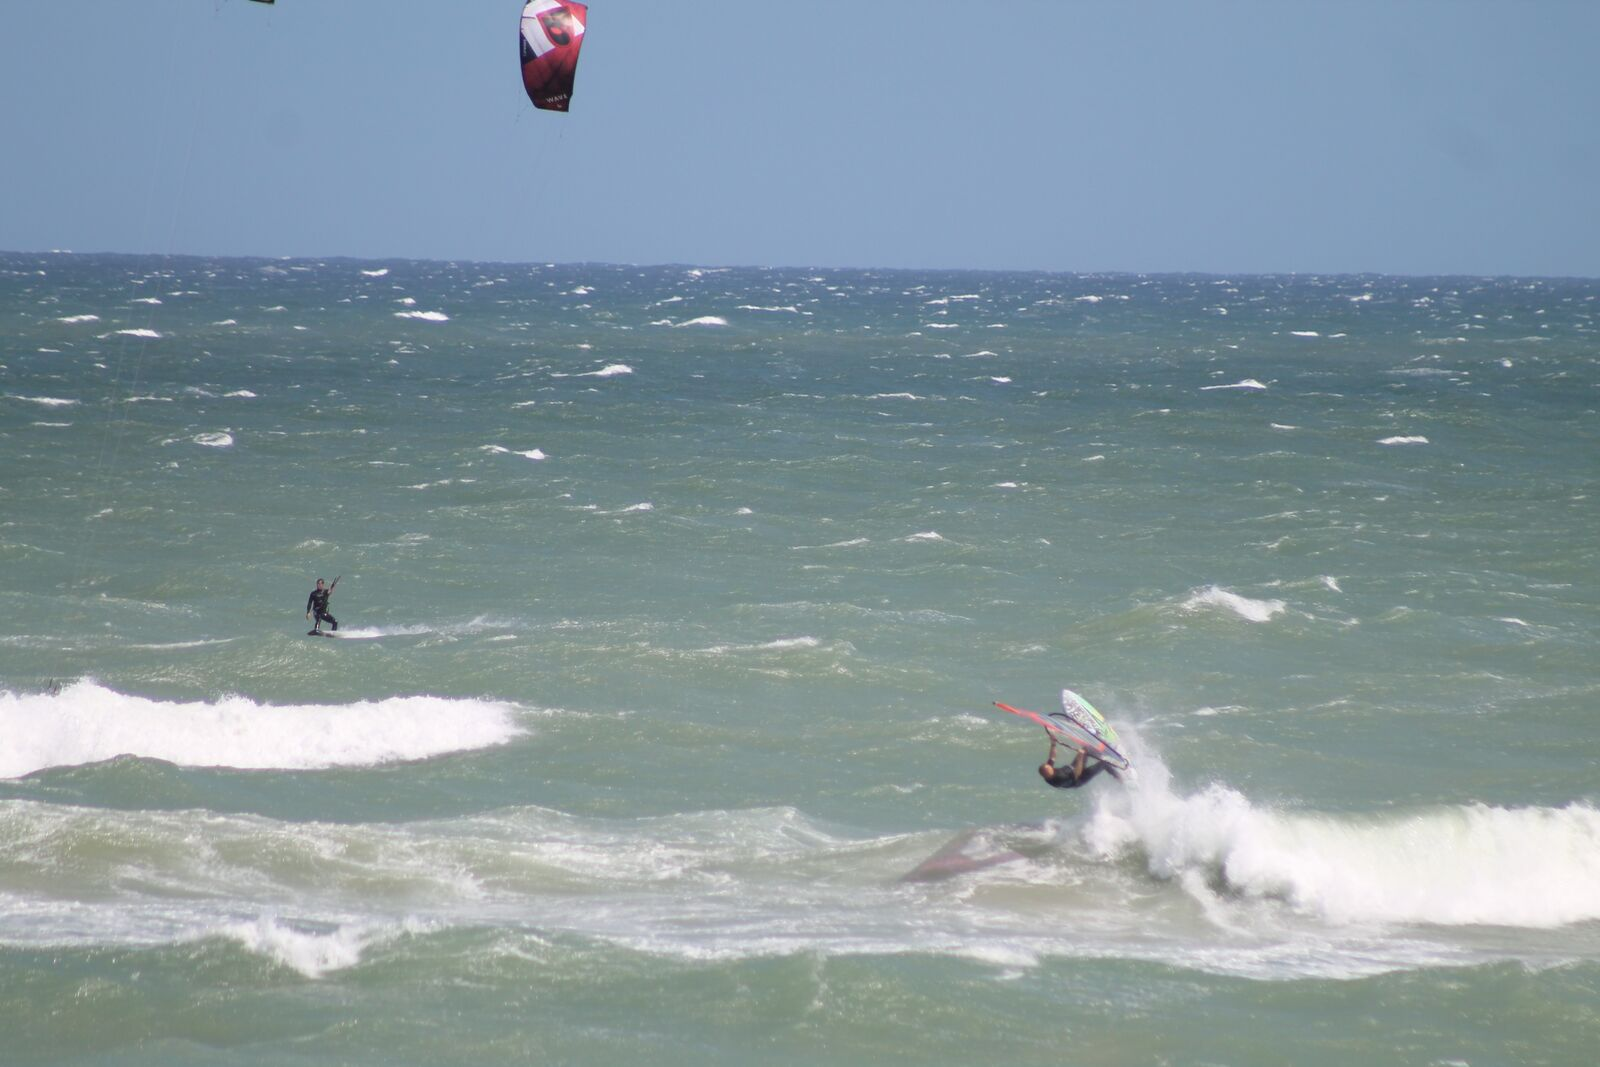 J Bay Wind - Kitesurfing